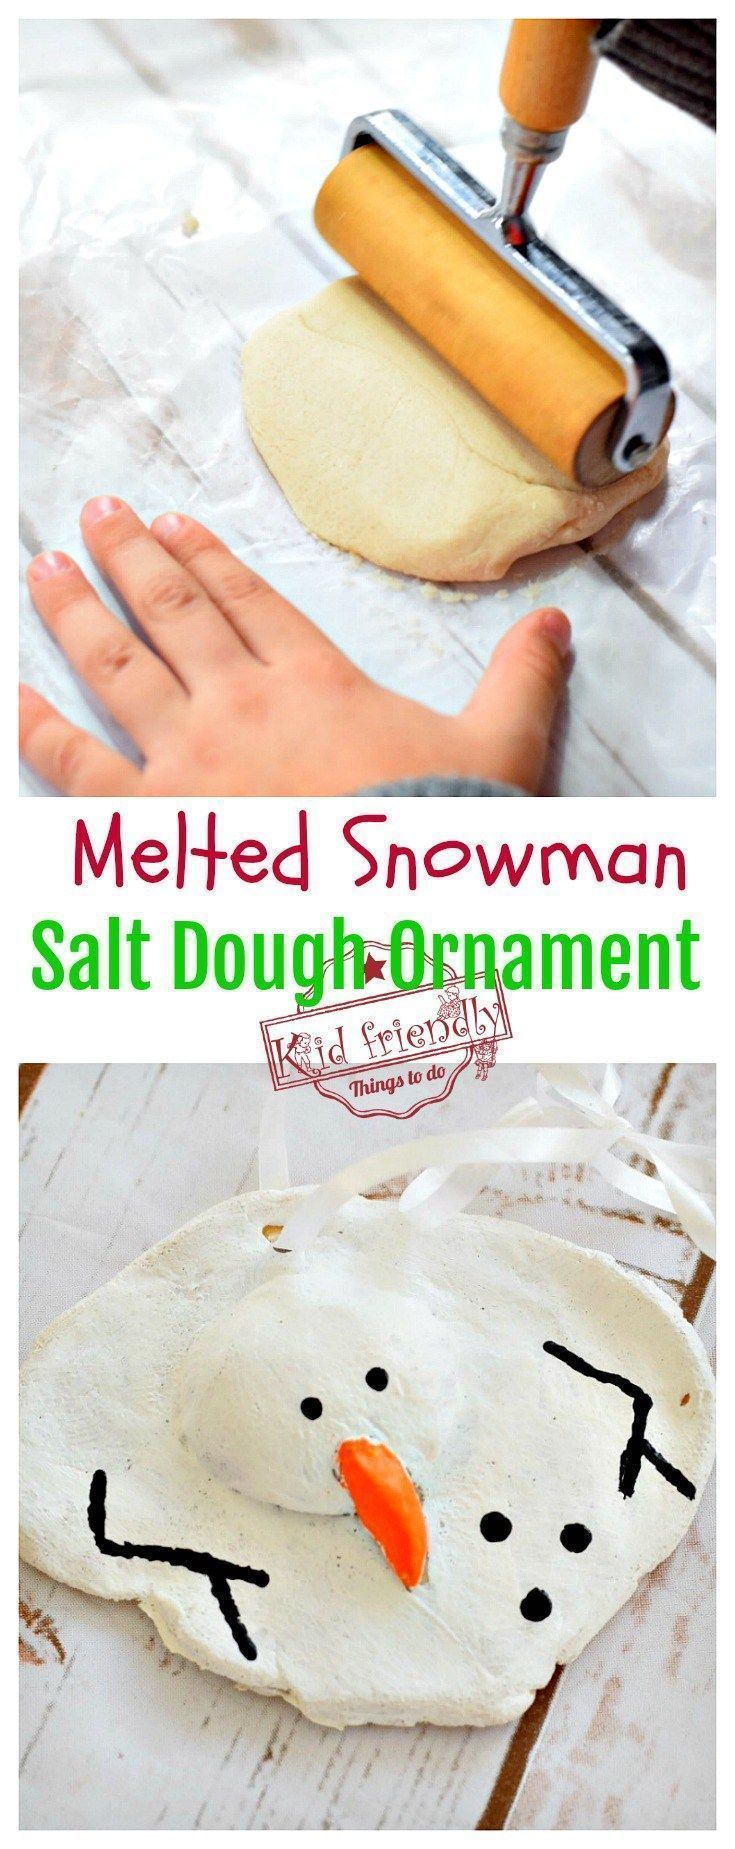 A Diy Melted Snowman And Candy Cane Salt Dough Ornament Idea And Recipe For Christmas With Kids Salt Dough Salt Dough Ornaments Melted Snowman